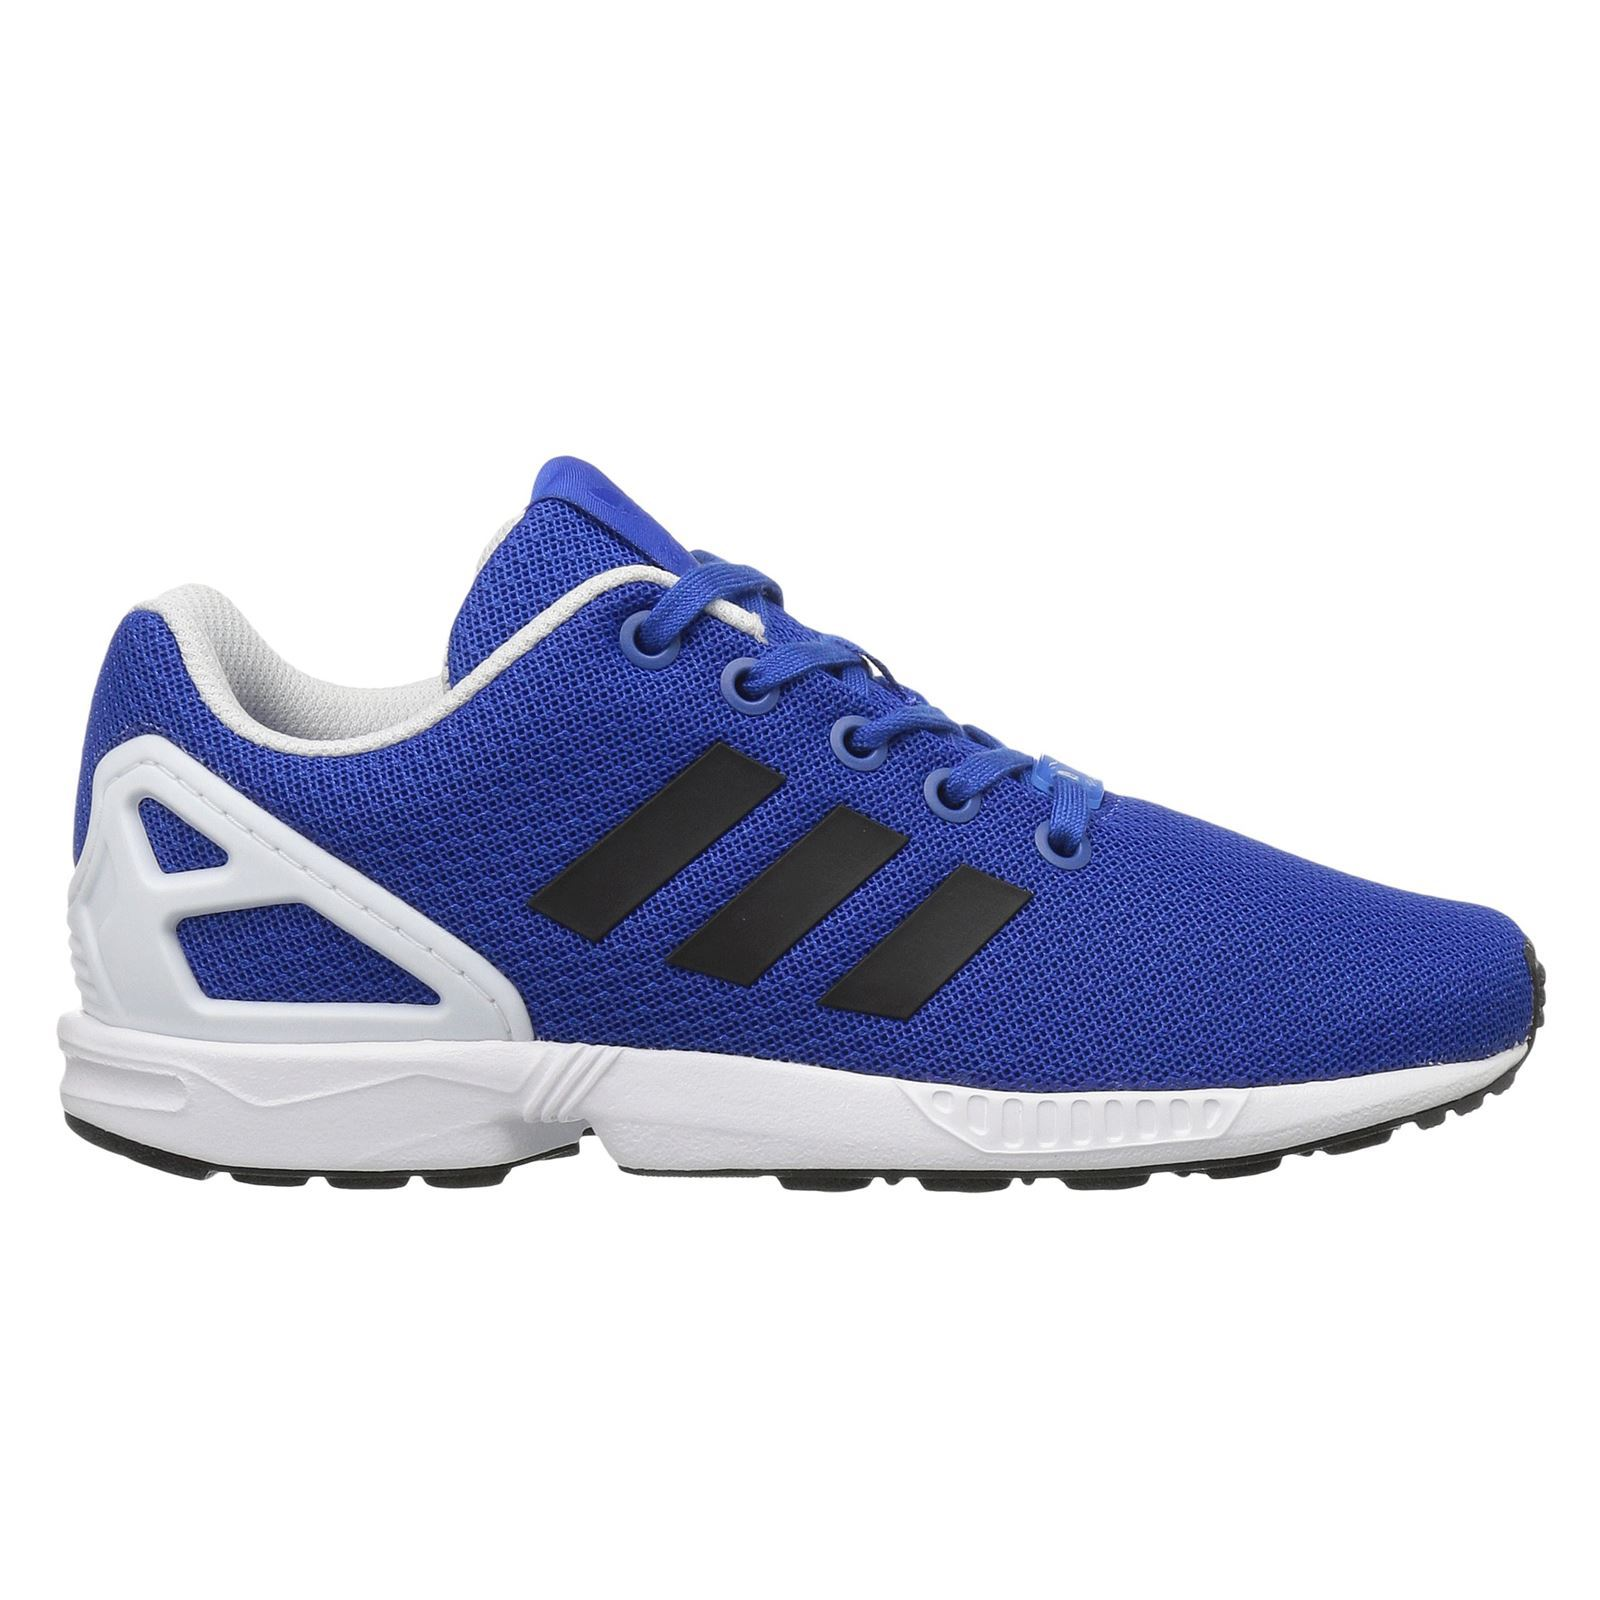 bf20ac912 ... shopping adidas zx flux junior trainers originals kids clearance 2b550  f29a5